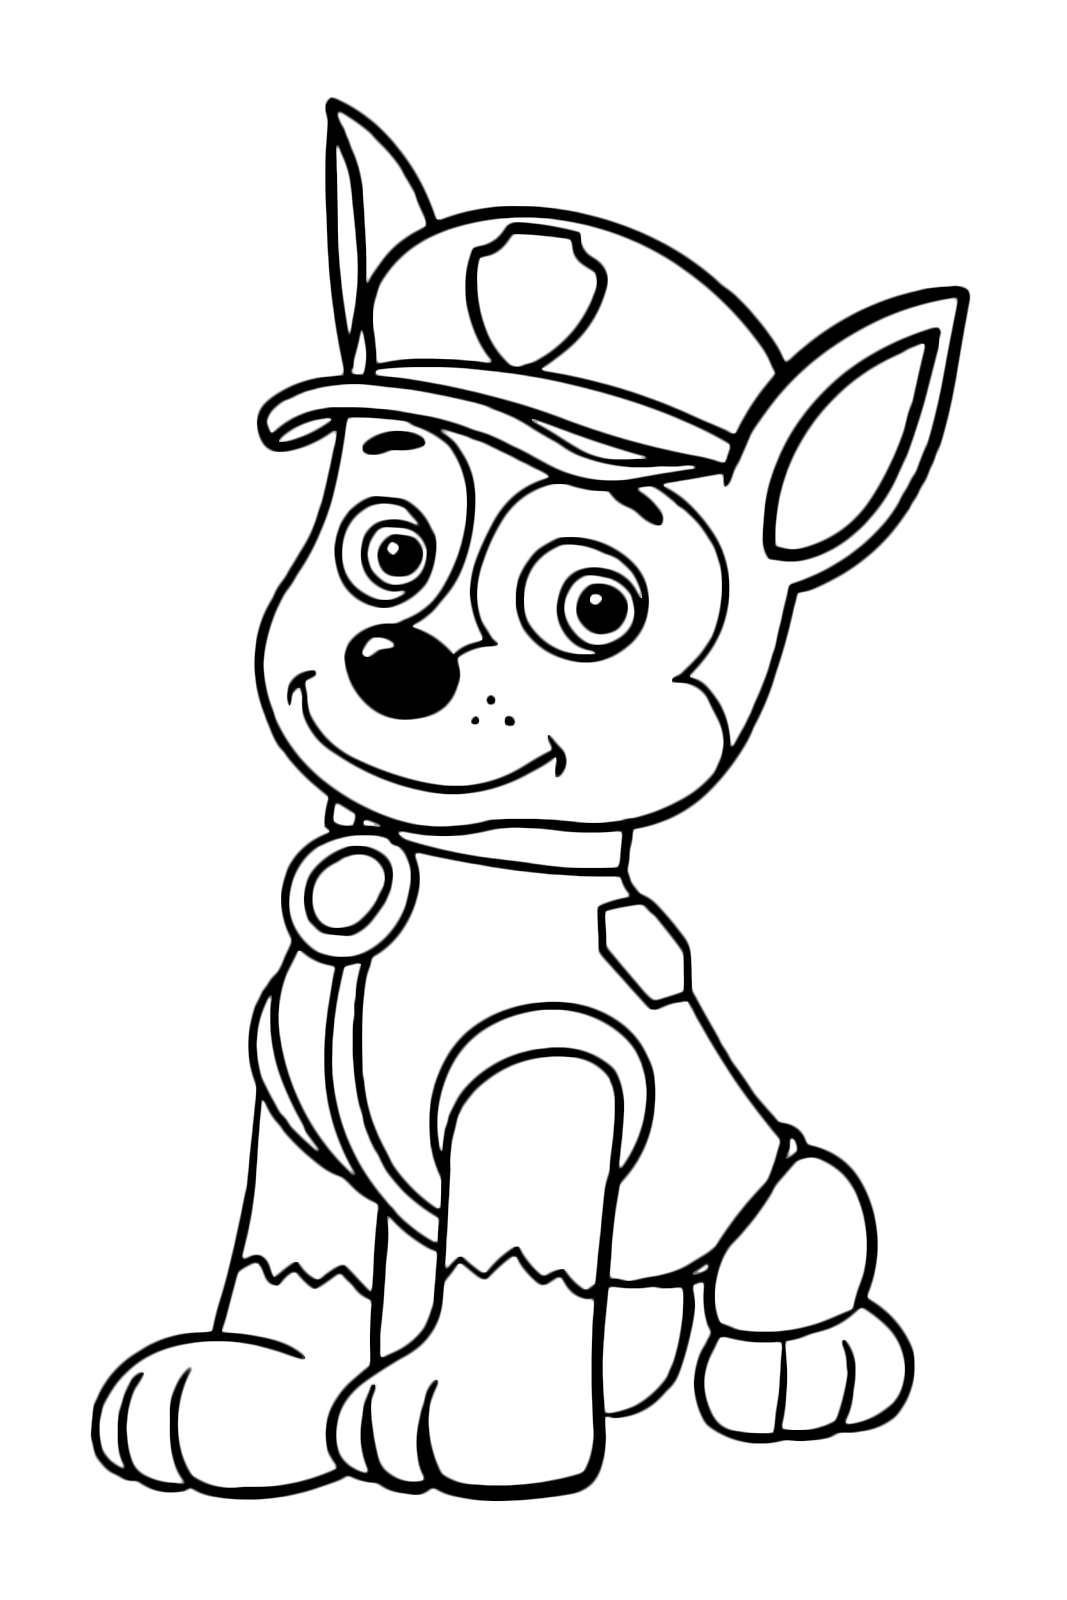 Paw Patrol Coloring Pages Pdf